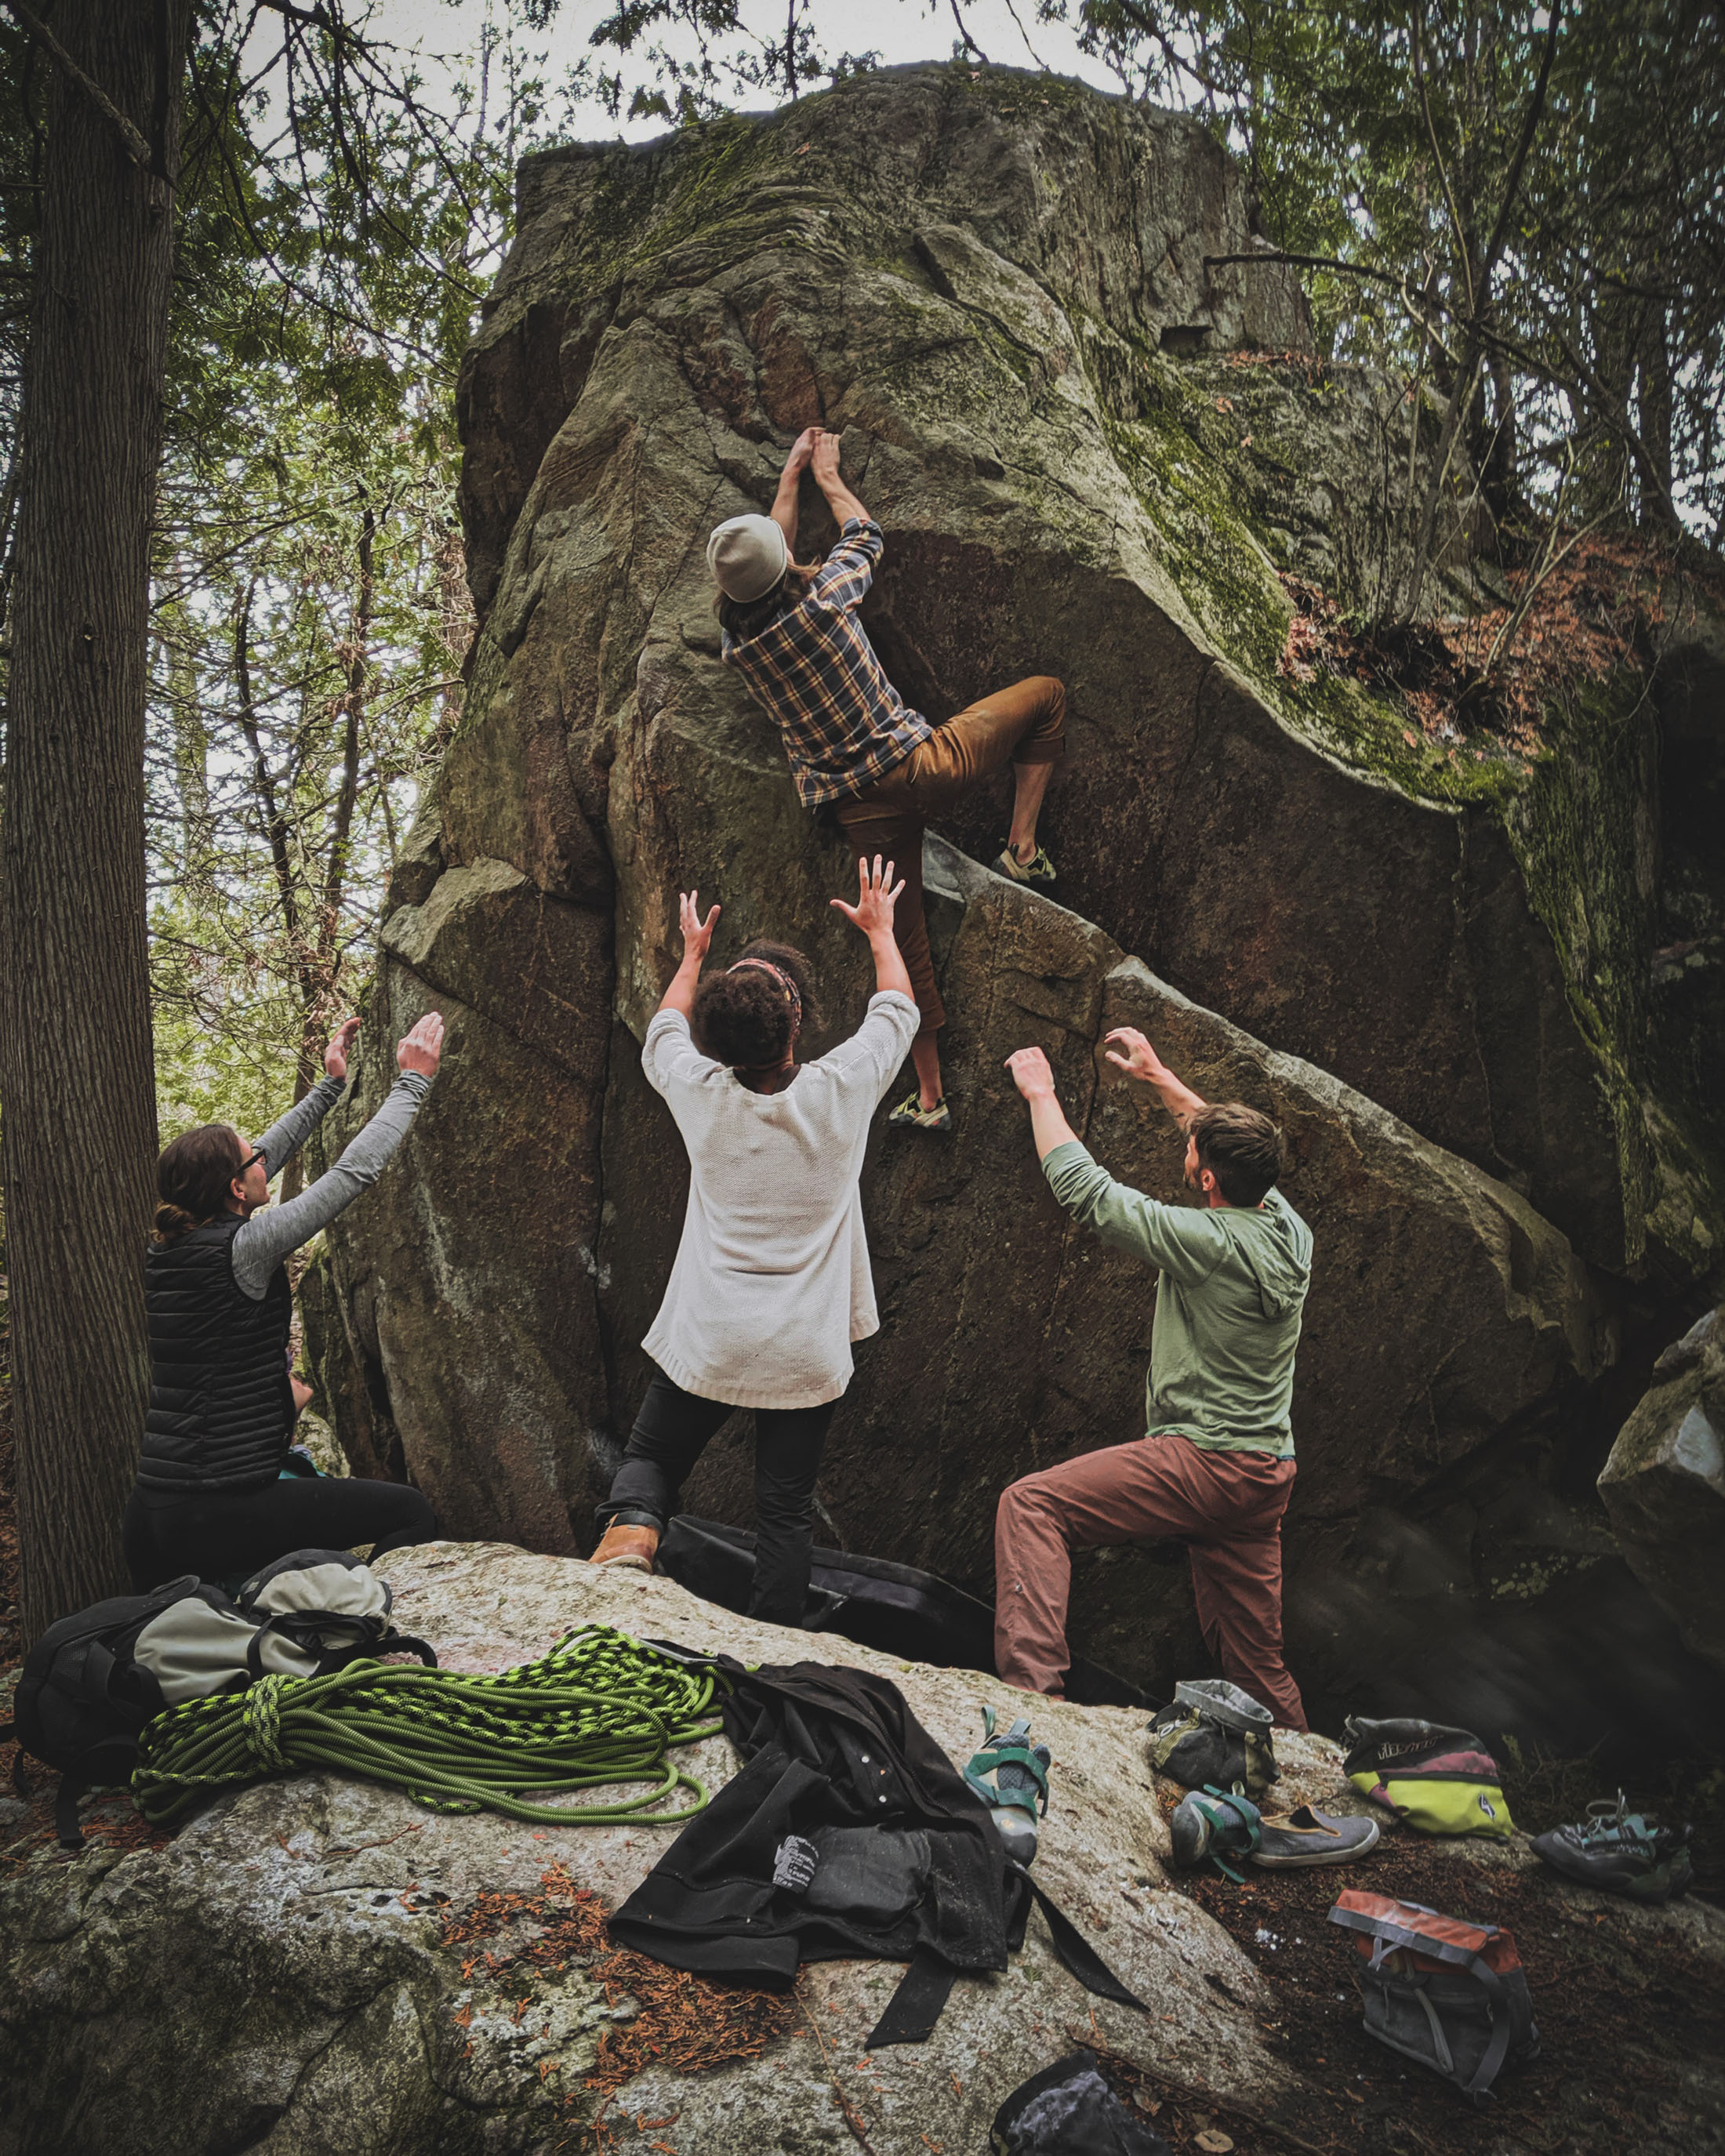 team of rock climbers help eachother succeed climb boulder outdoors pacific northwest